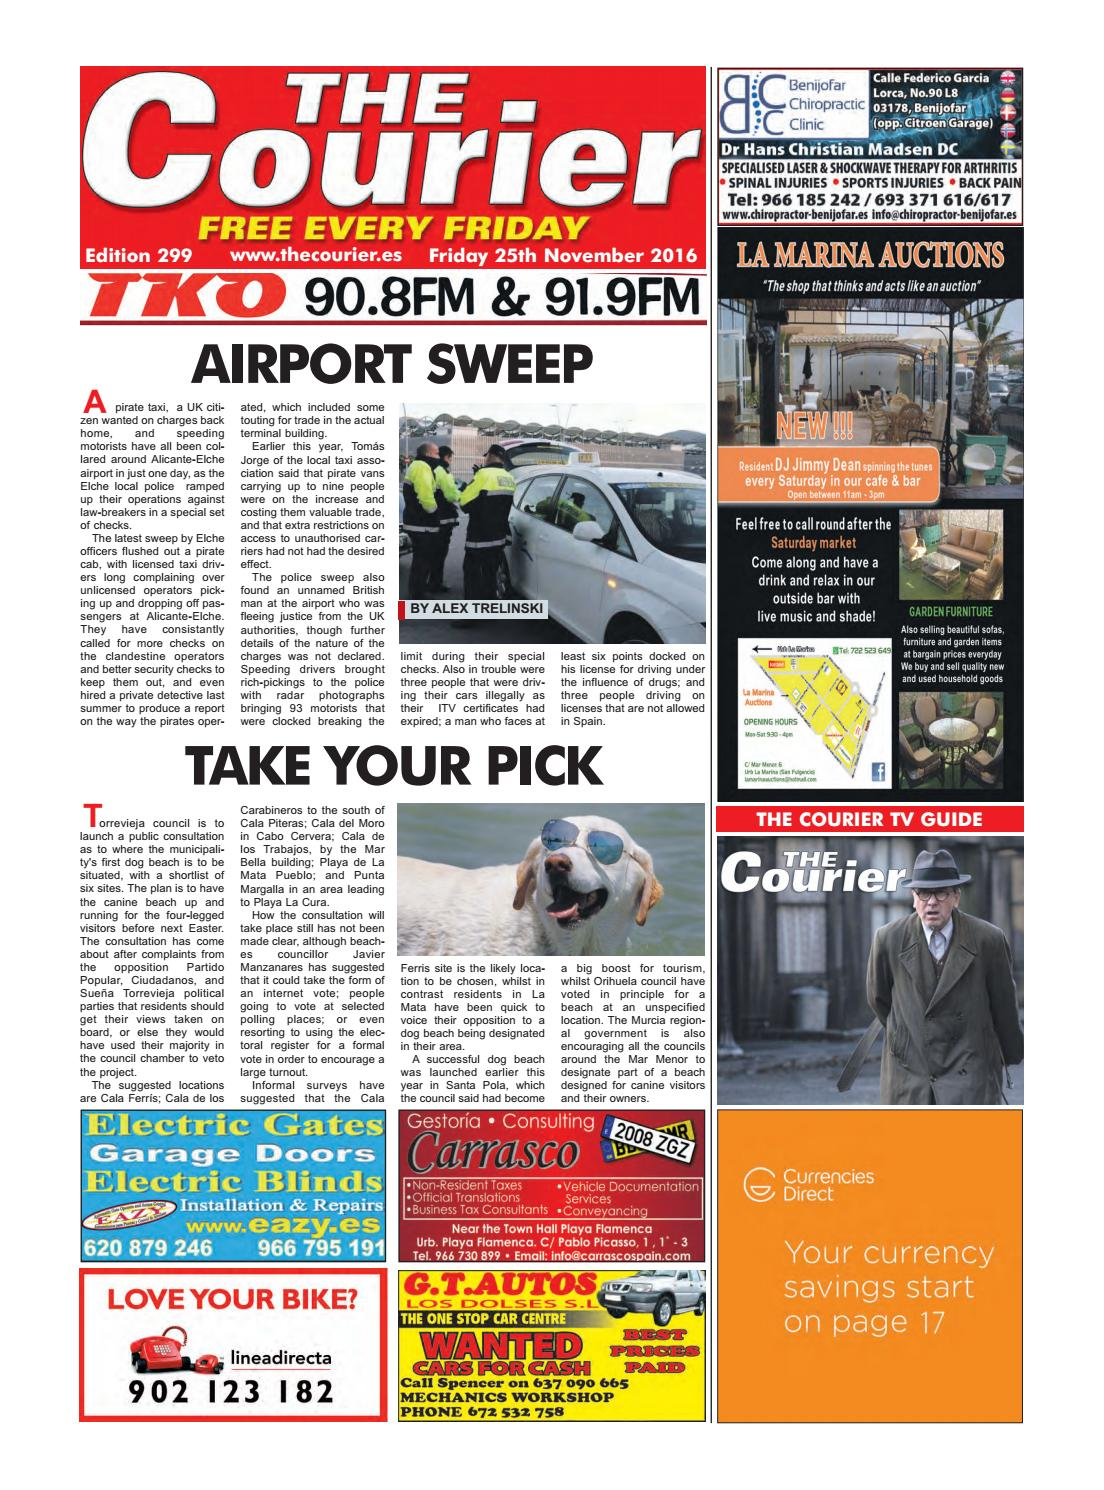 663cfa9c0e4 The Courier Edition 299 by The Courier Newspaper - issuu